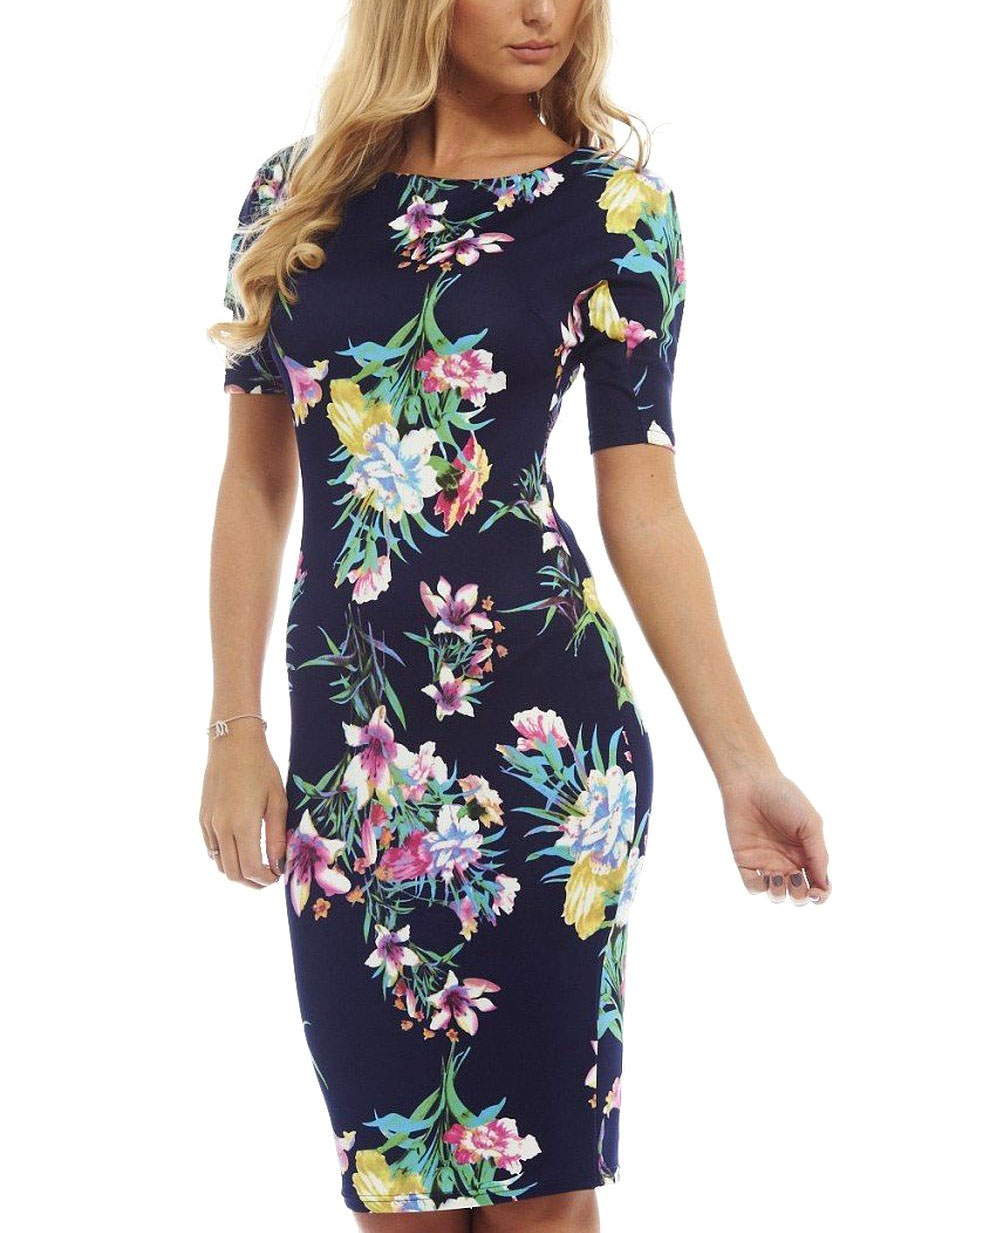 Women Dress Vestidos Summer Print Sexy Plus Size Work Business Casual Party Sheath ES0100-in ...